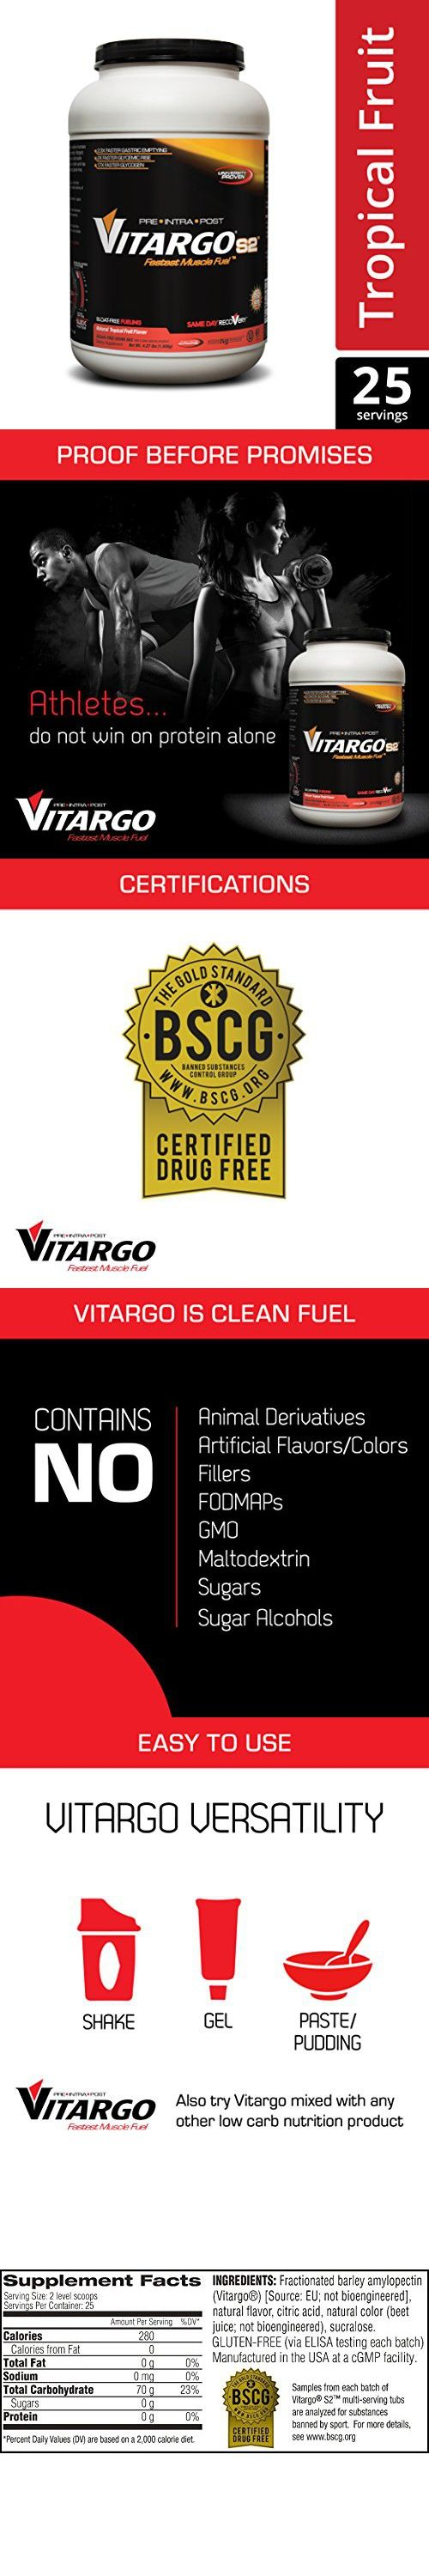 Vitargo S2 - Gluten Free Pre - Intra - Post Workout and ...